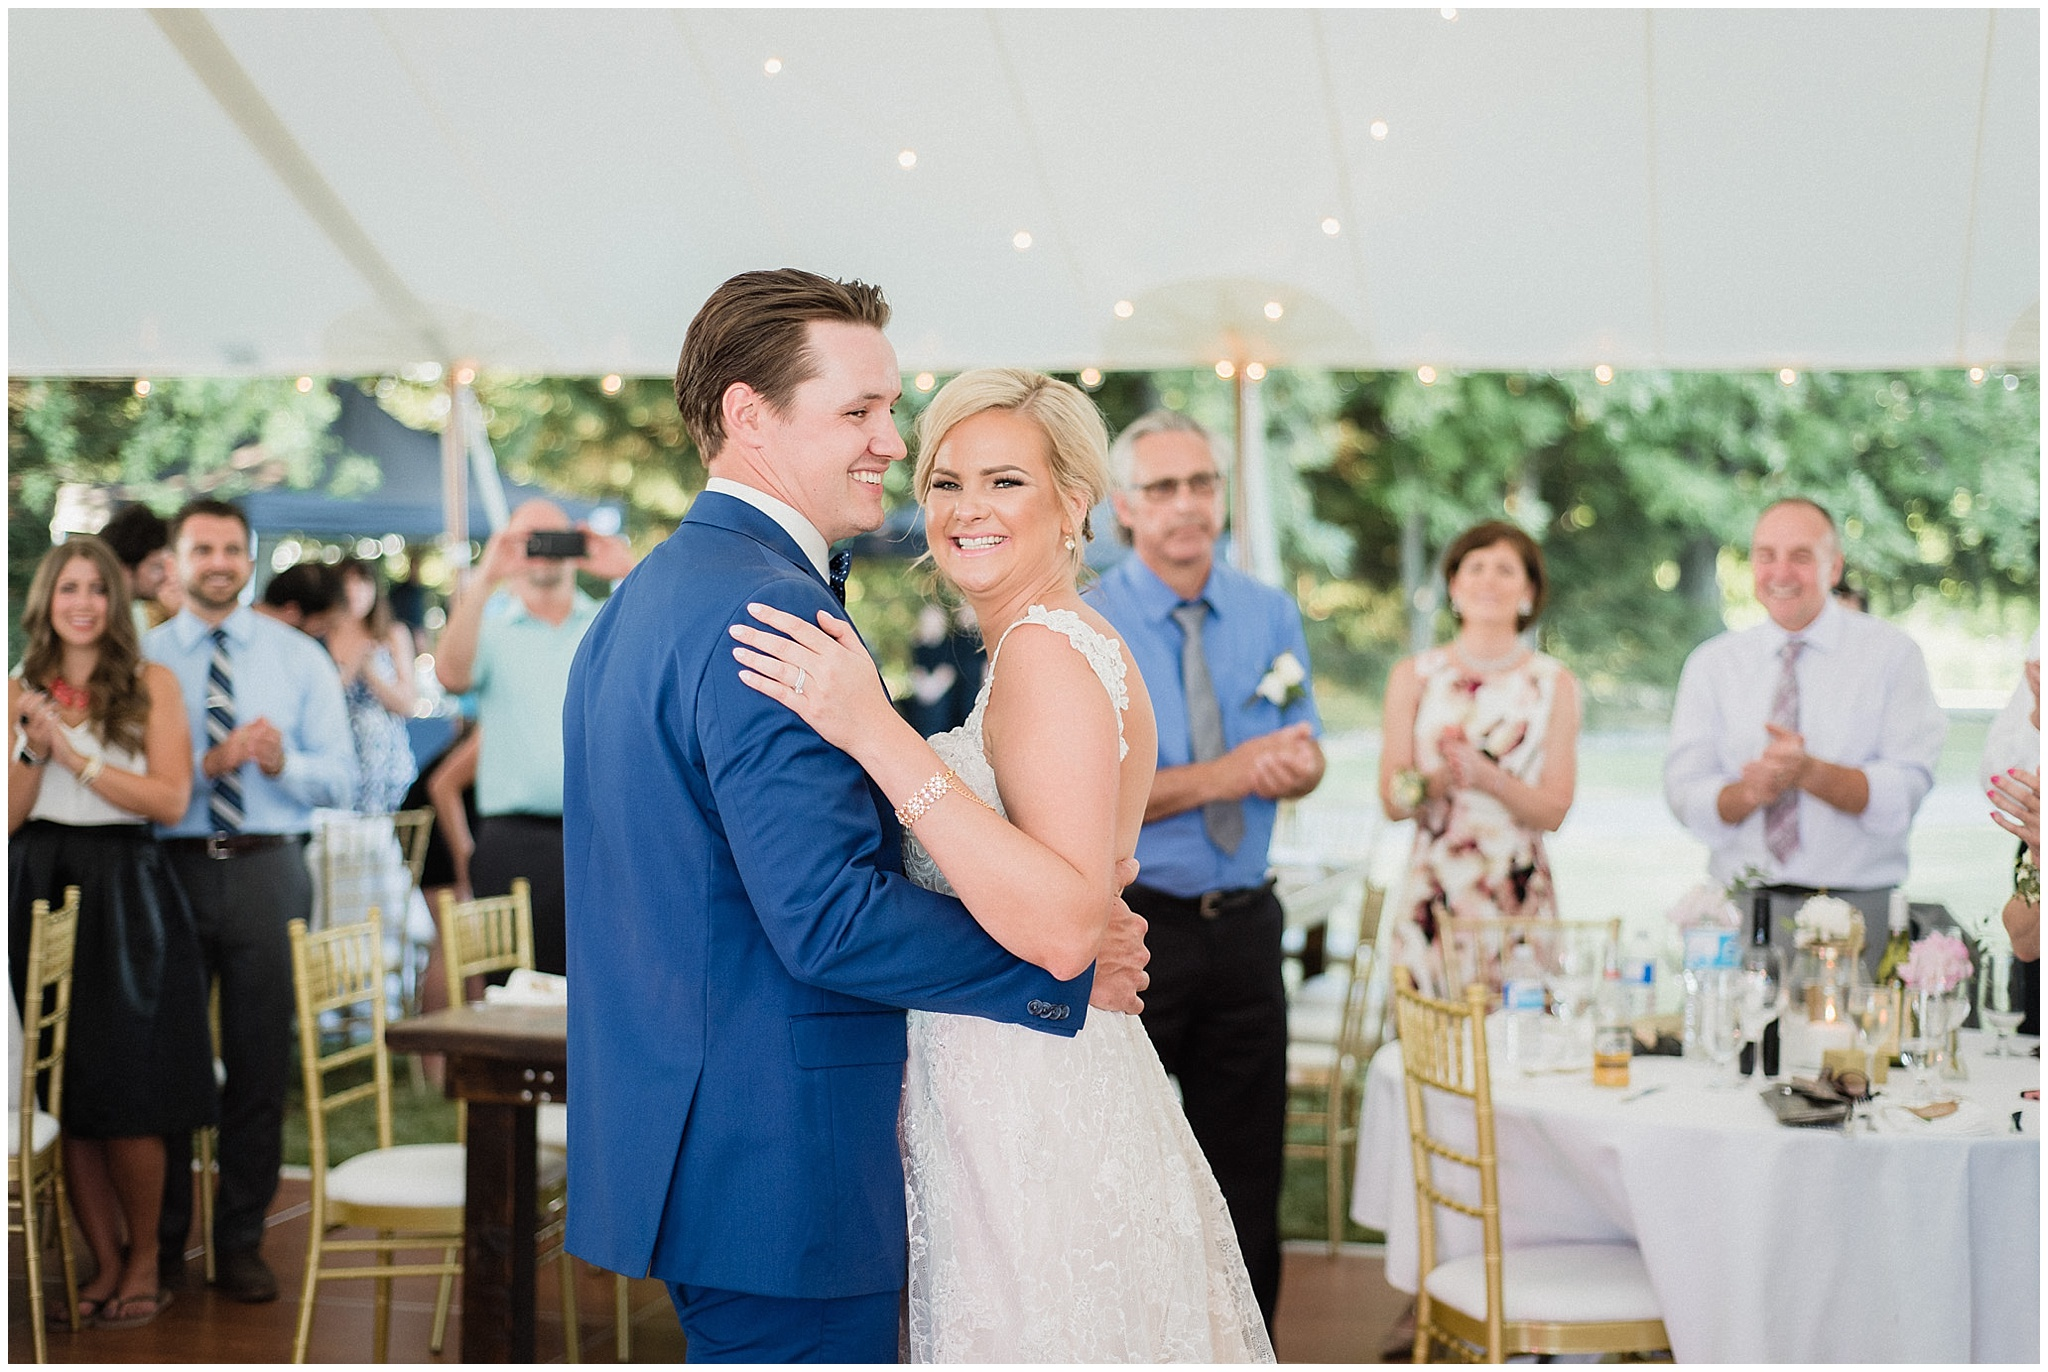 Bride and groom's first dance under string lights | Tent wedding in Guelph, Ontario by Jenn Kavanagh Photography